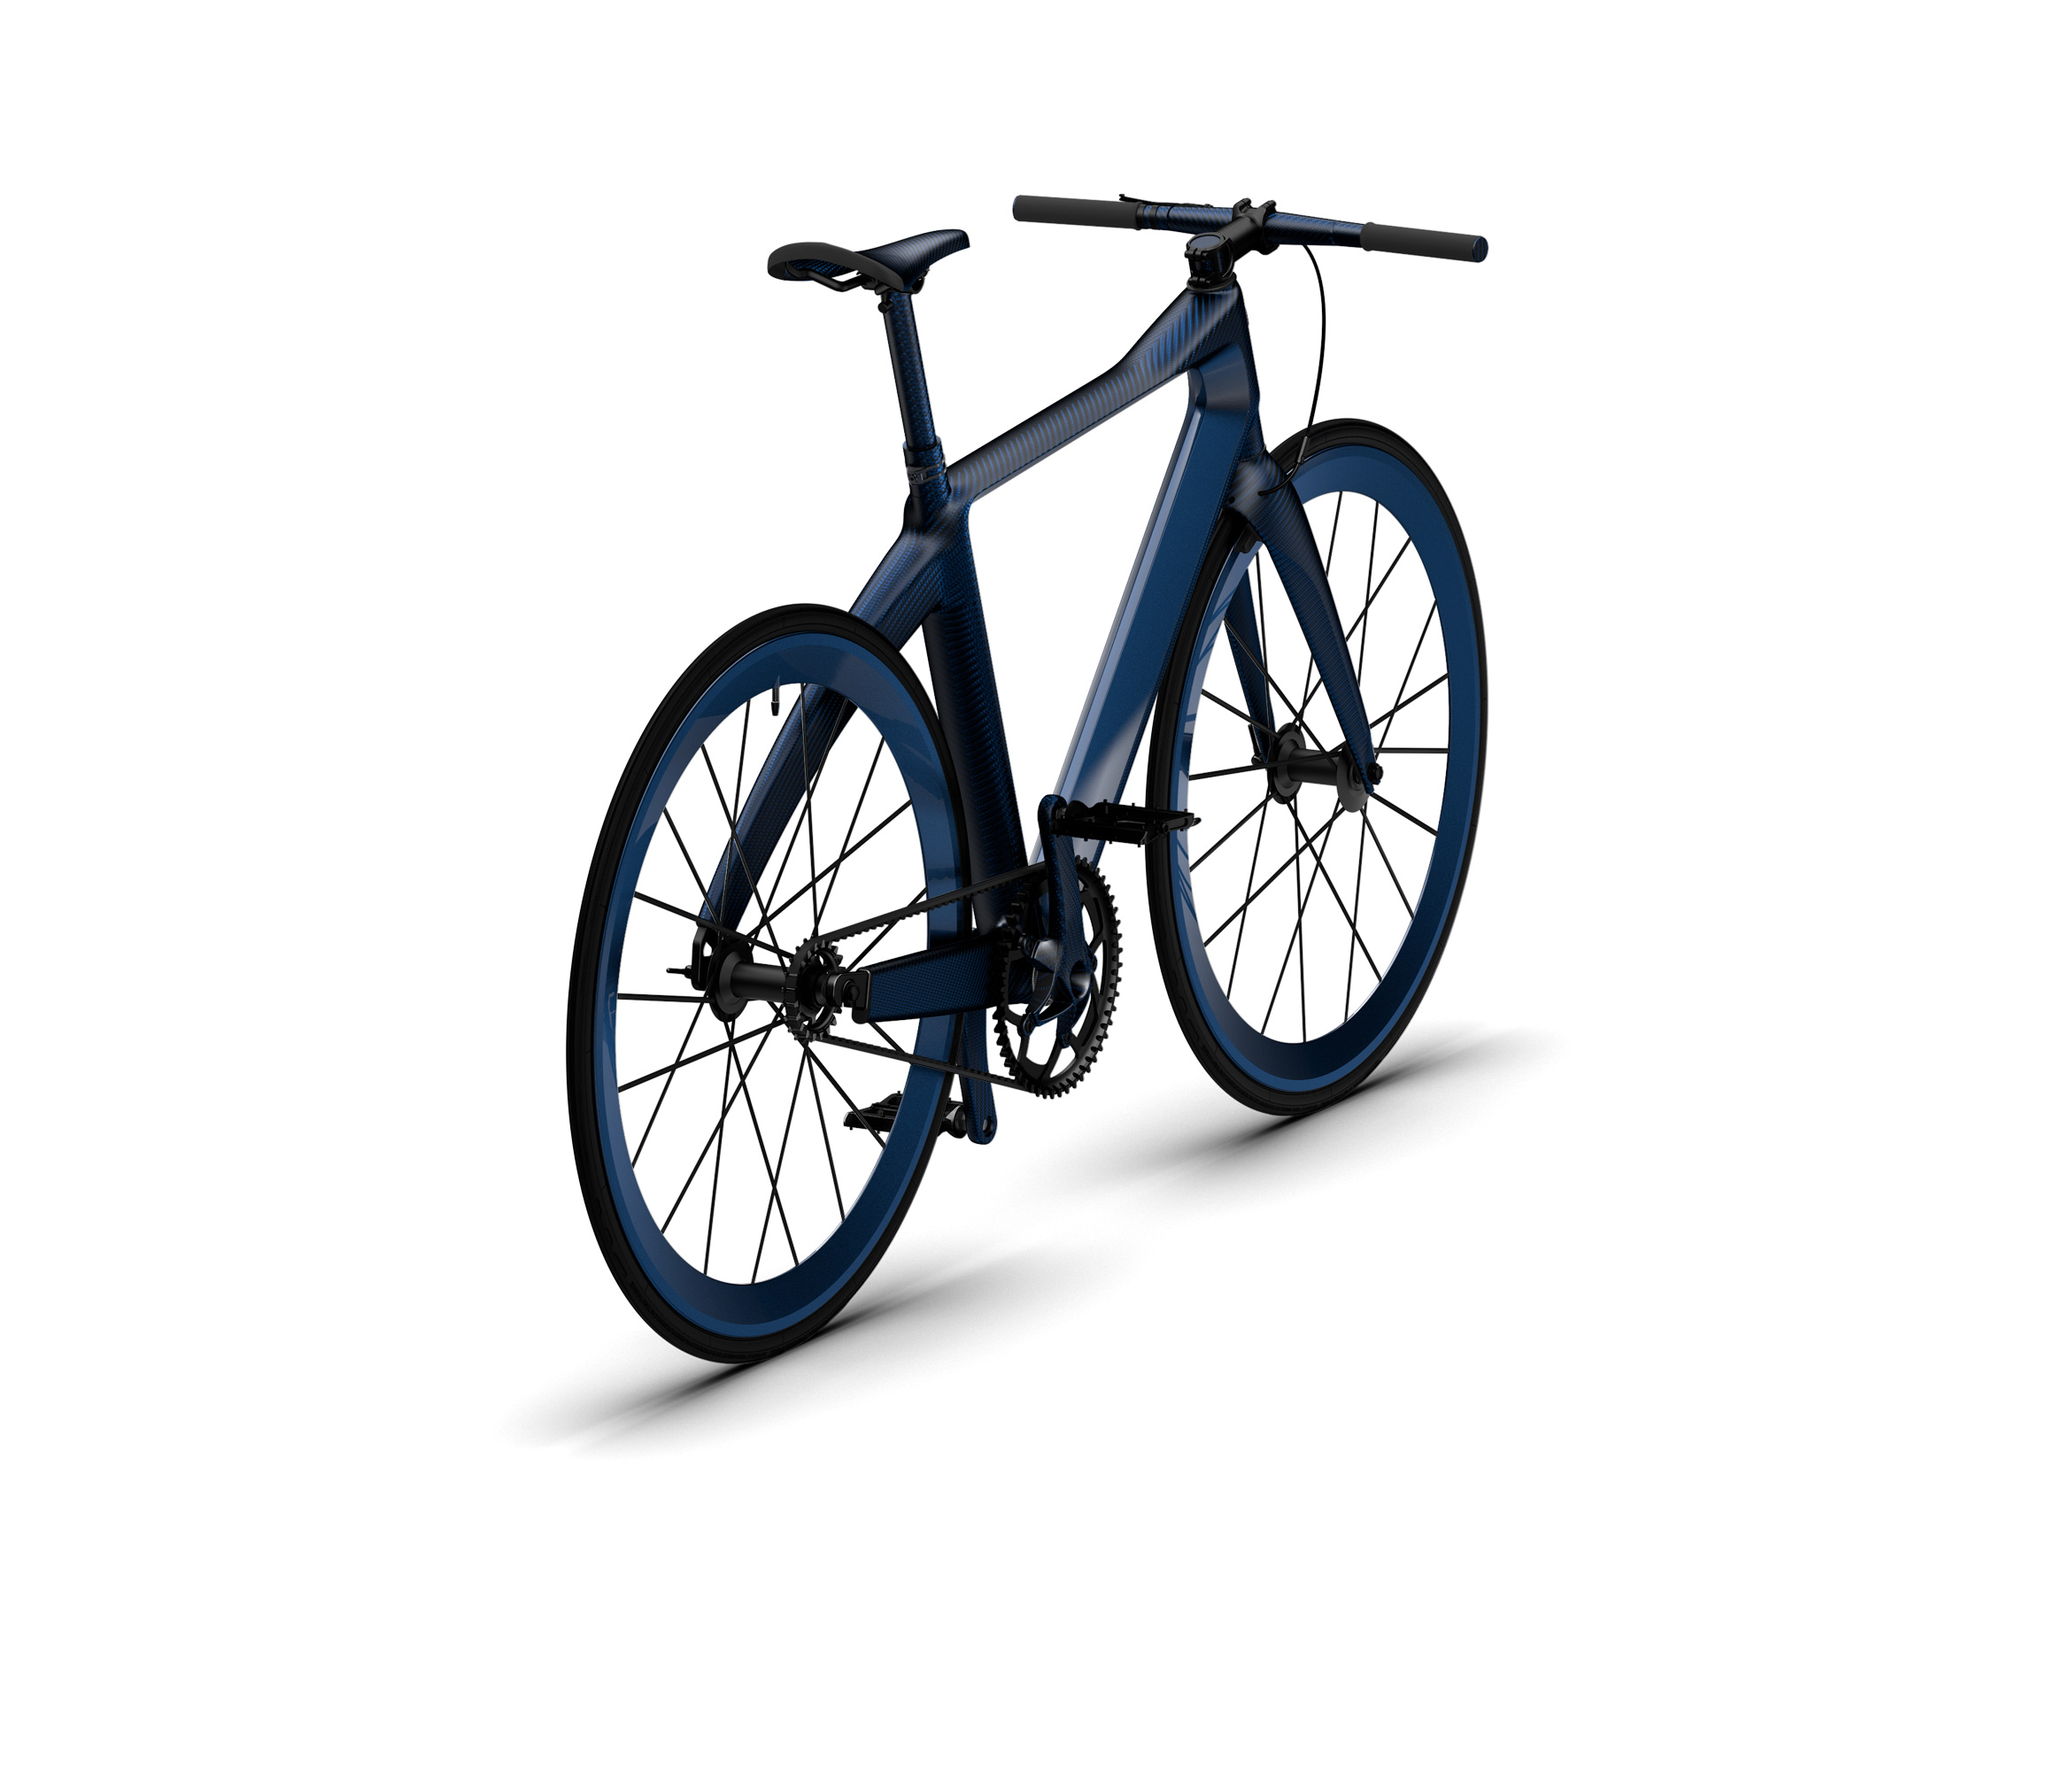 PG Bugatti bicycle (25)